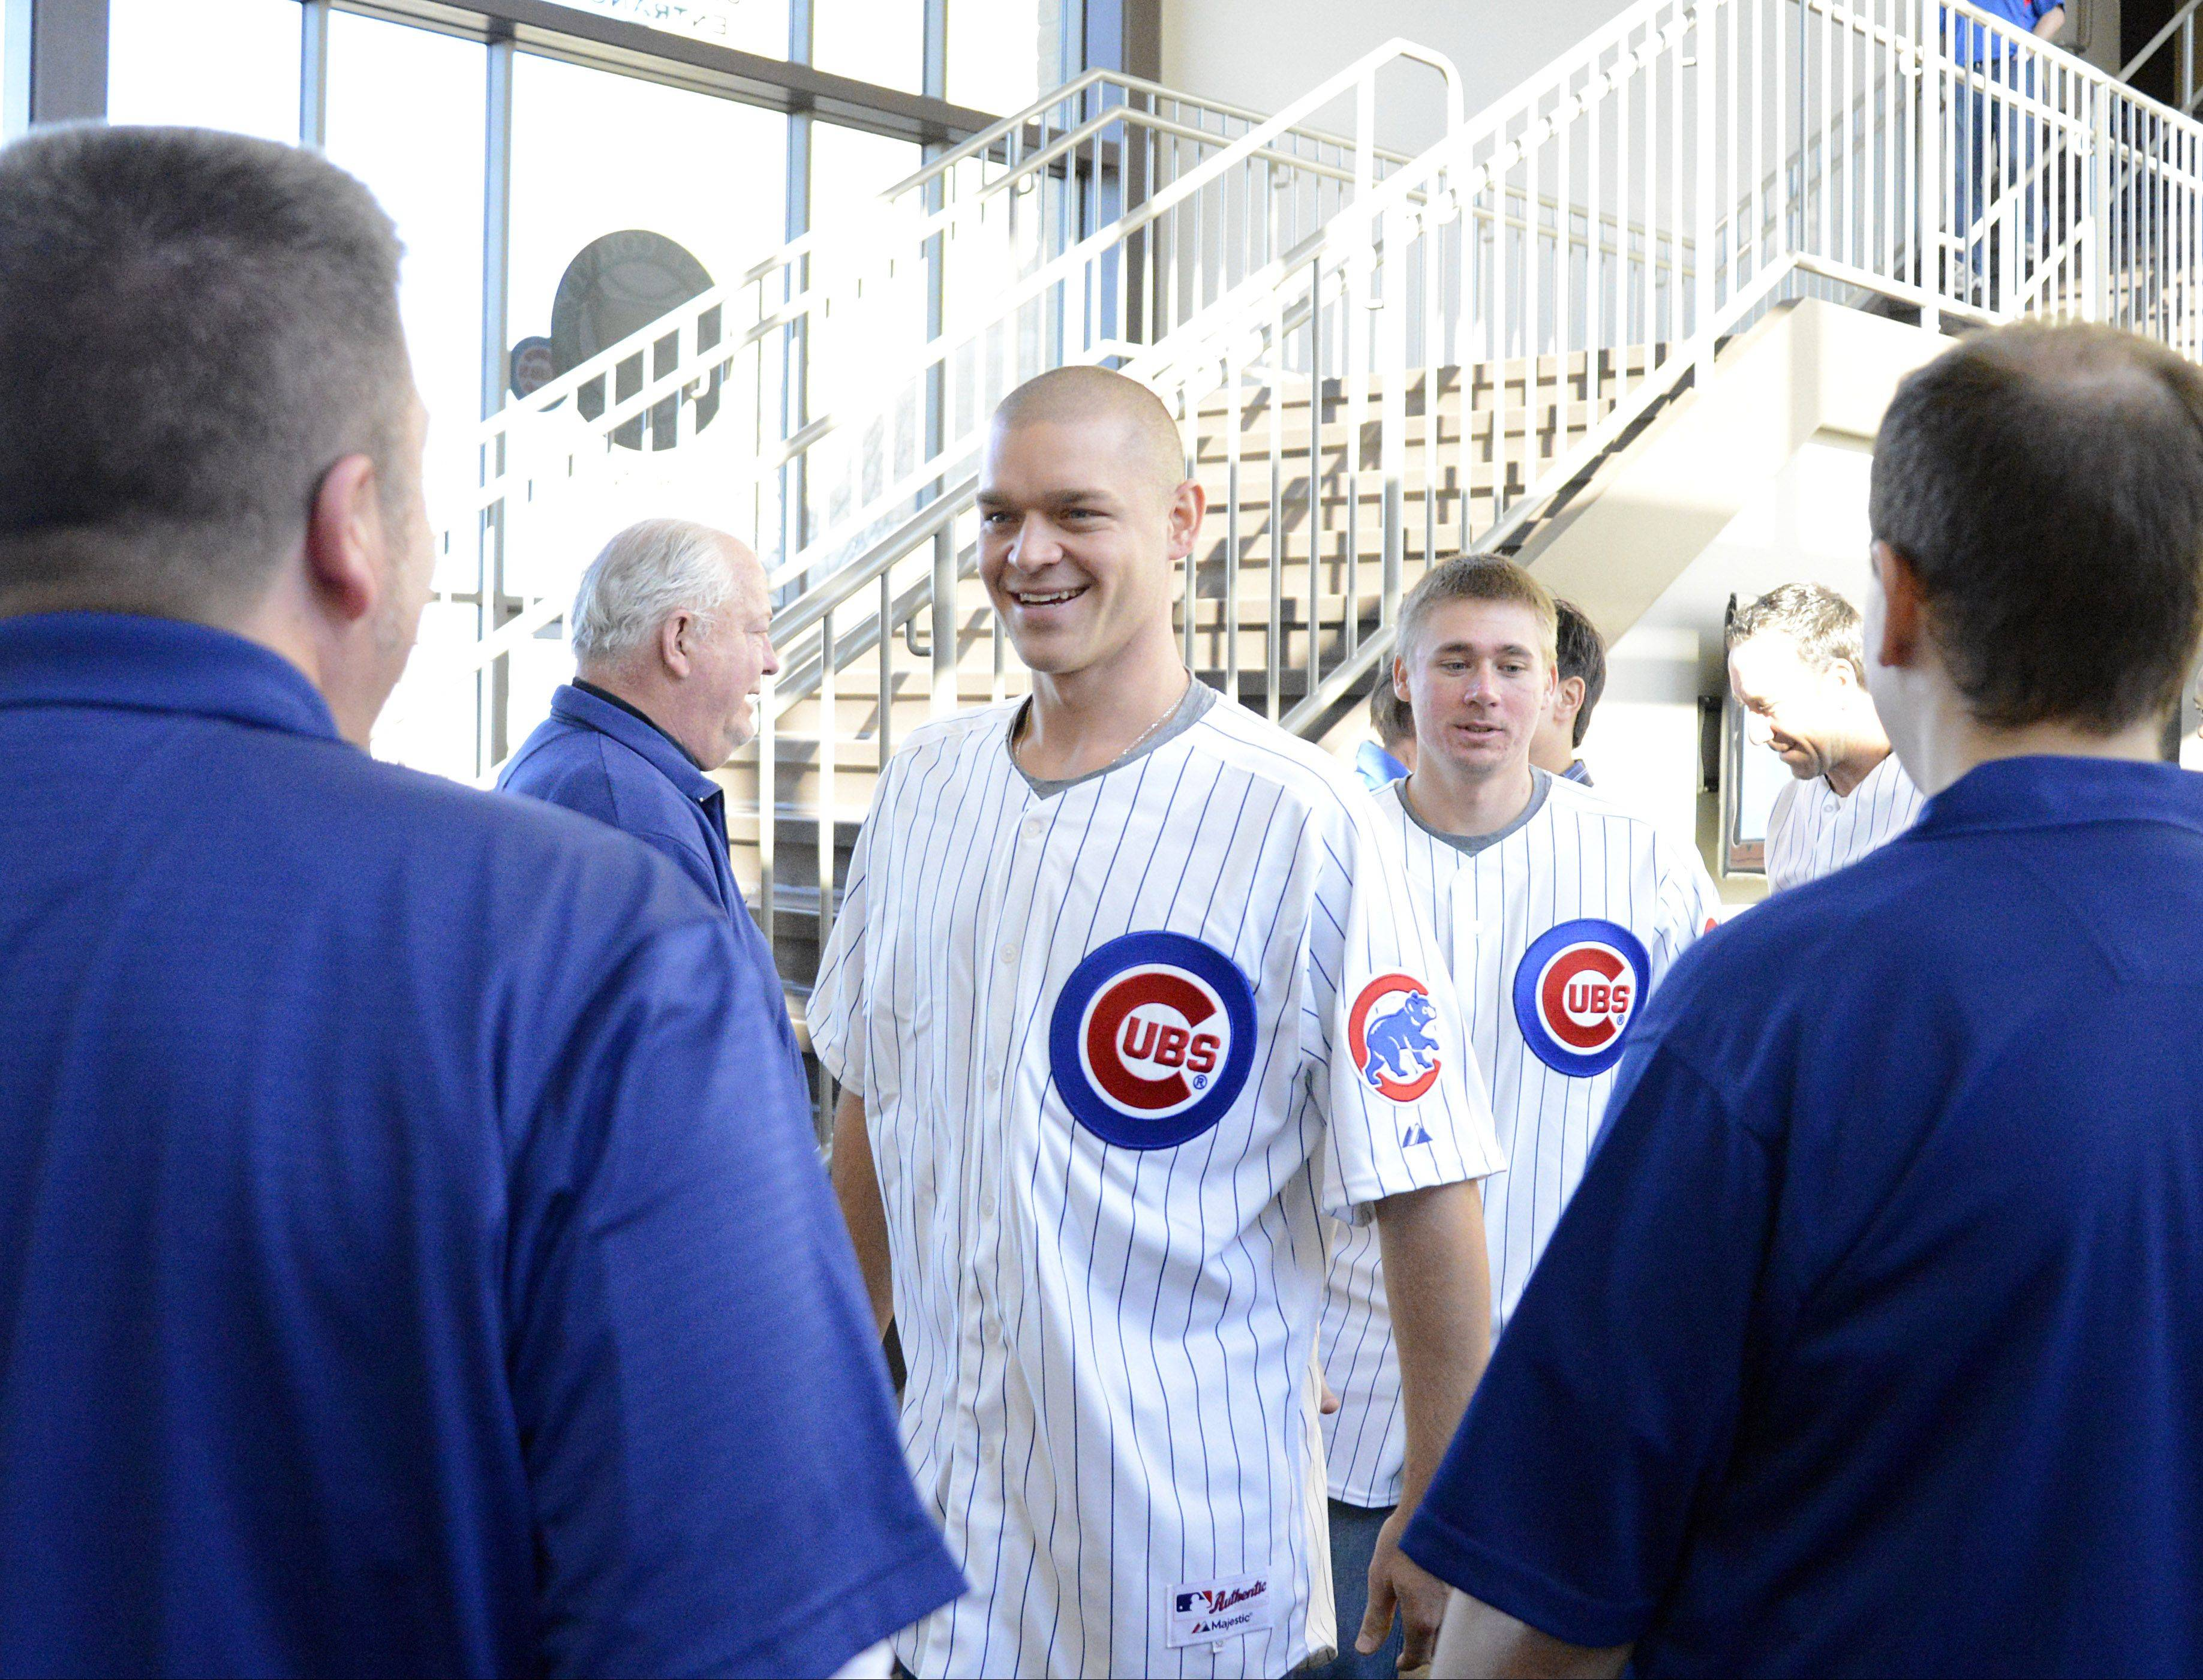 Kane County Cougars General Manager Curtis Haug, left, and Director of Public Relations Shawn Touney meet Chicago Cubs pitcher Michael Bowden at Fifth Third Bank Ball Park in Geneva Jan. 17. The Cougars are now a Class A affiliate with the Chicago Cubs.